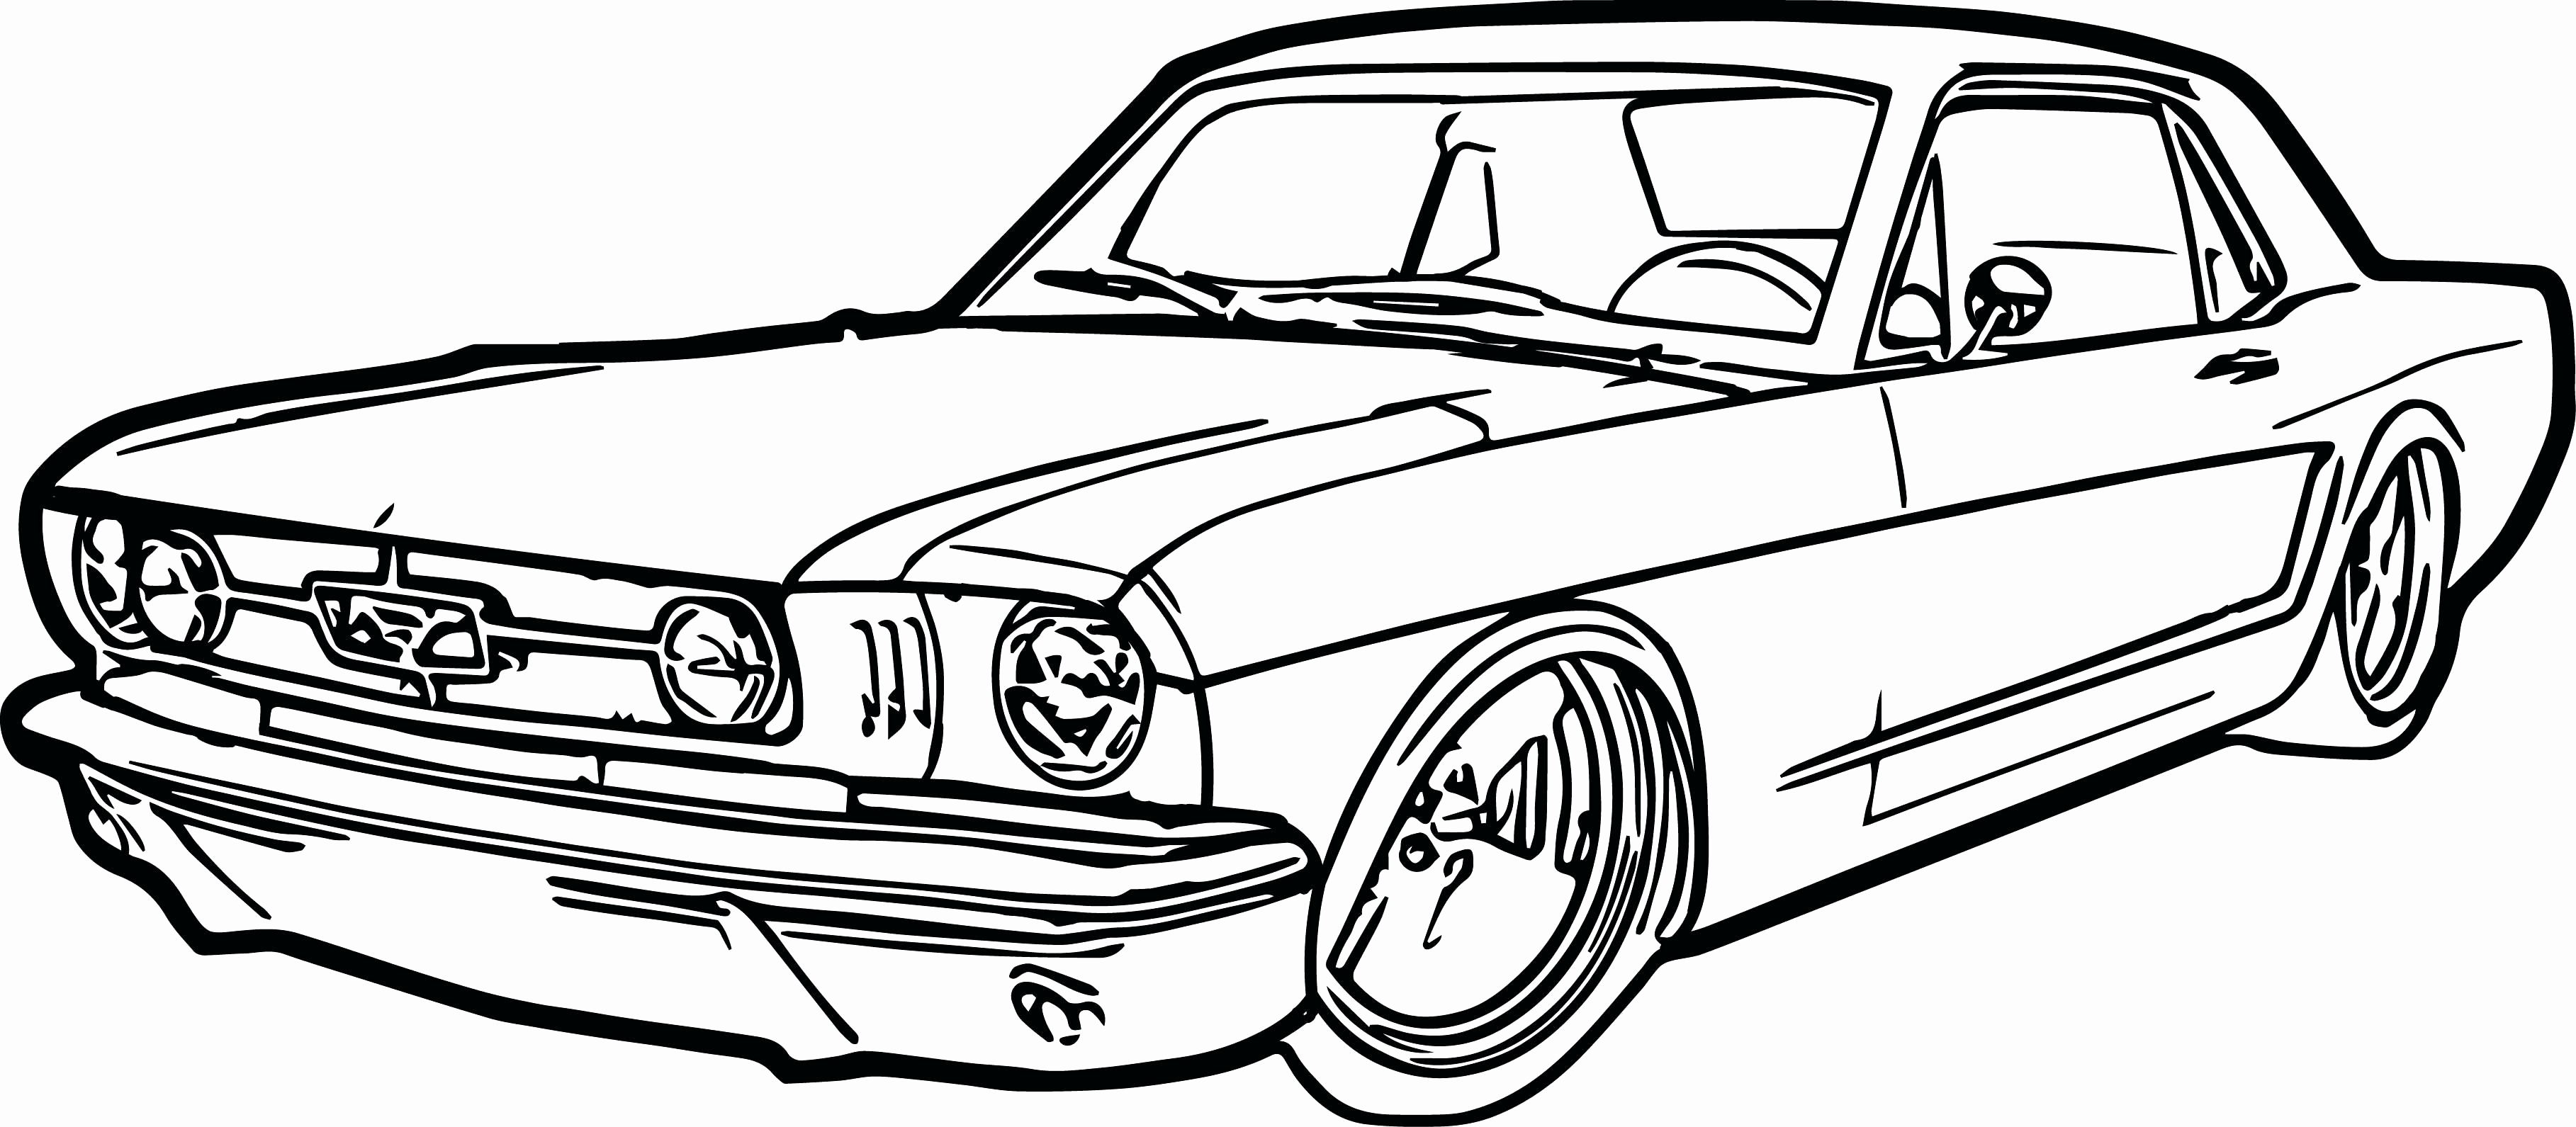 coloring cars pages kindergarten coloring pages easy cars coloring home cars pages coloring